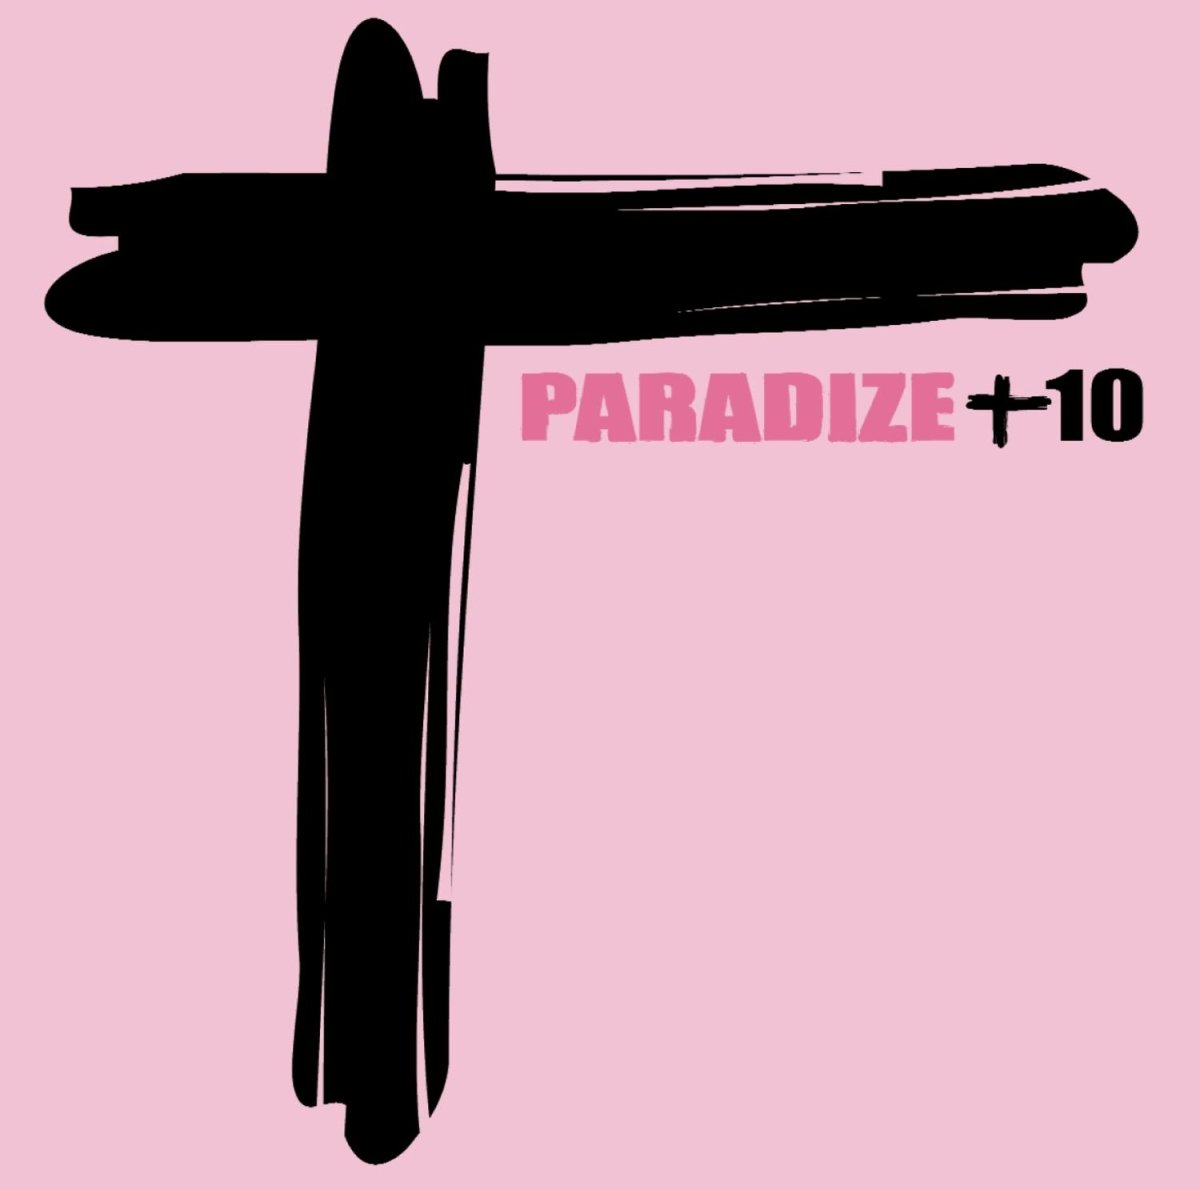 Limited time for free shipping Paradize Max 54% OFF Plus 10